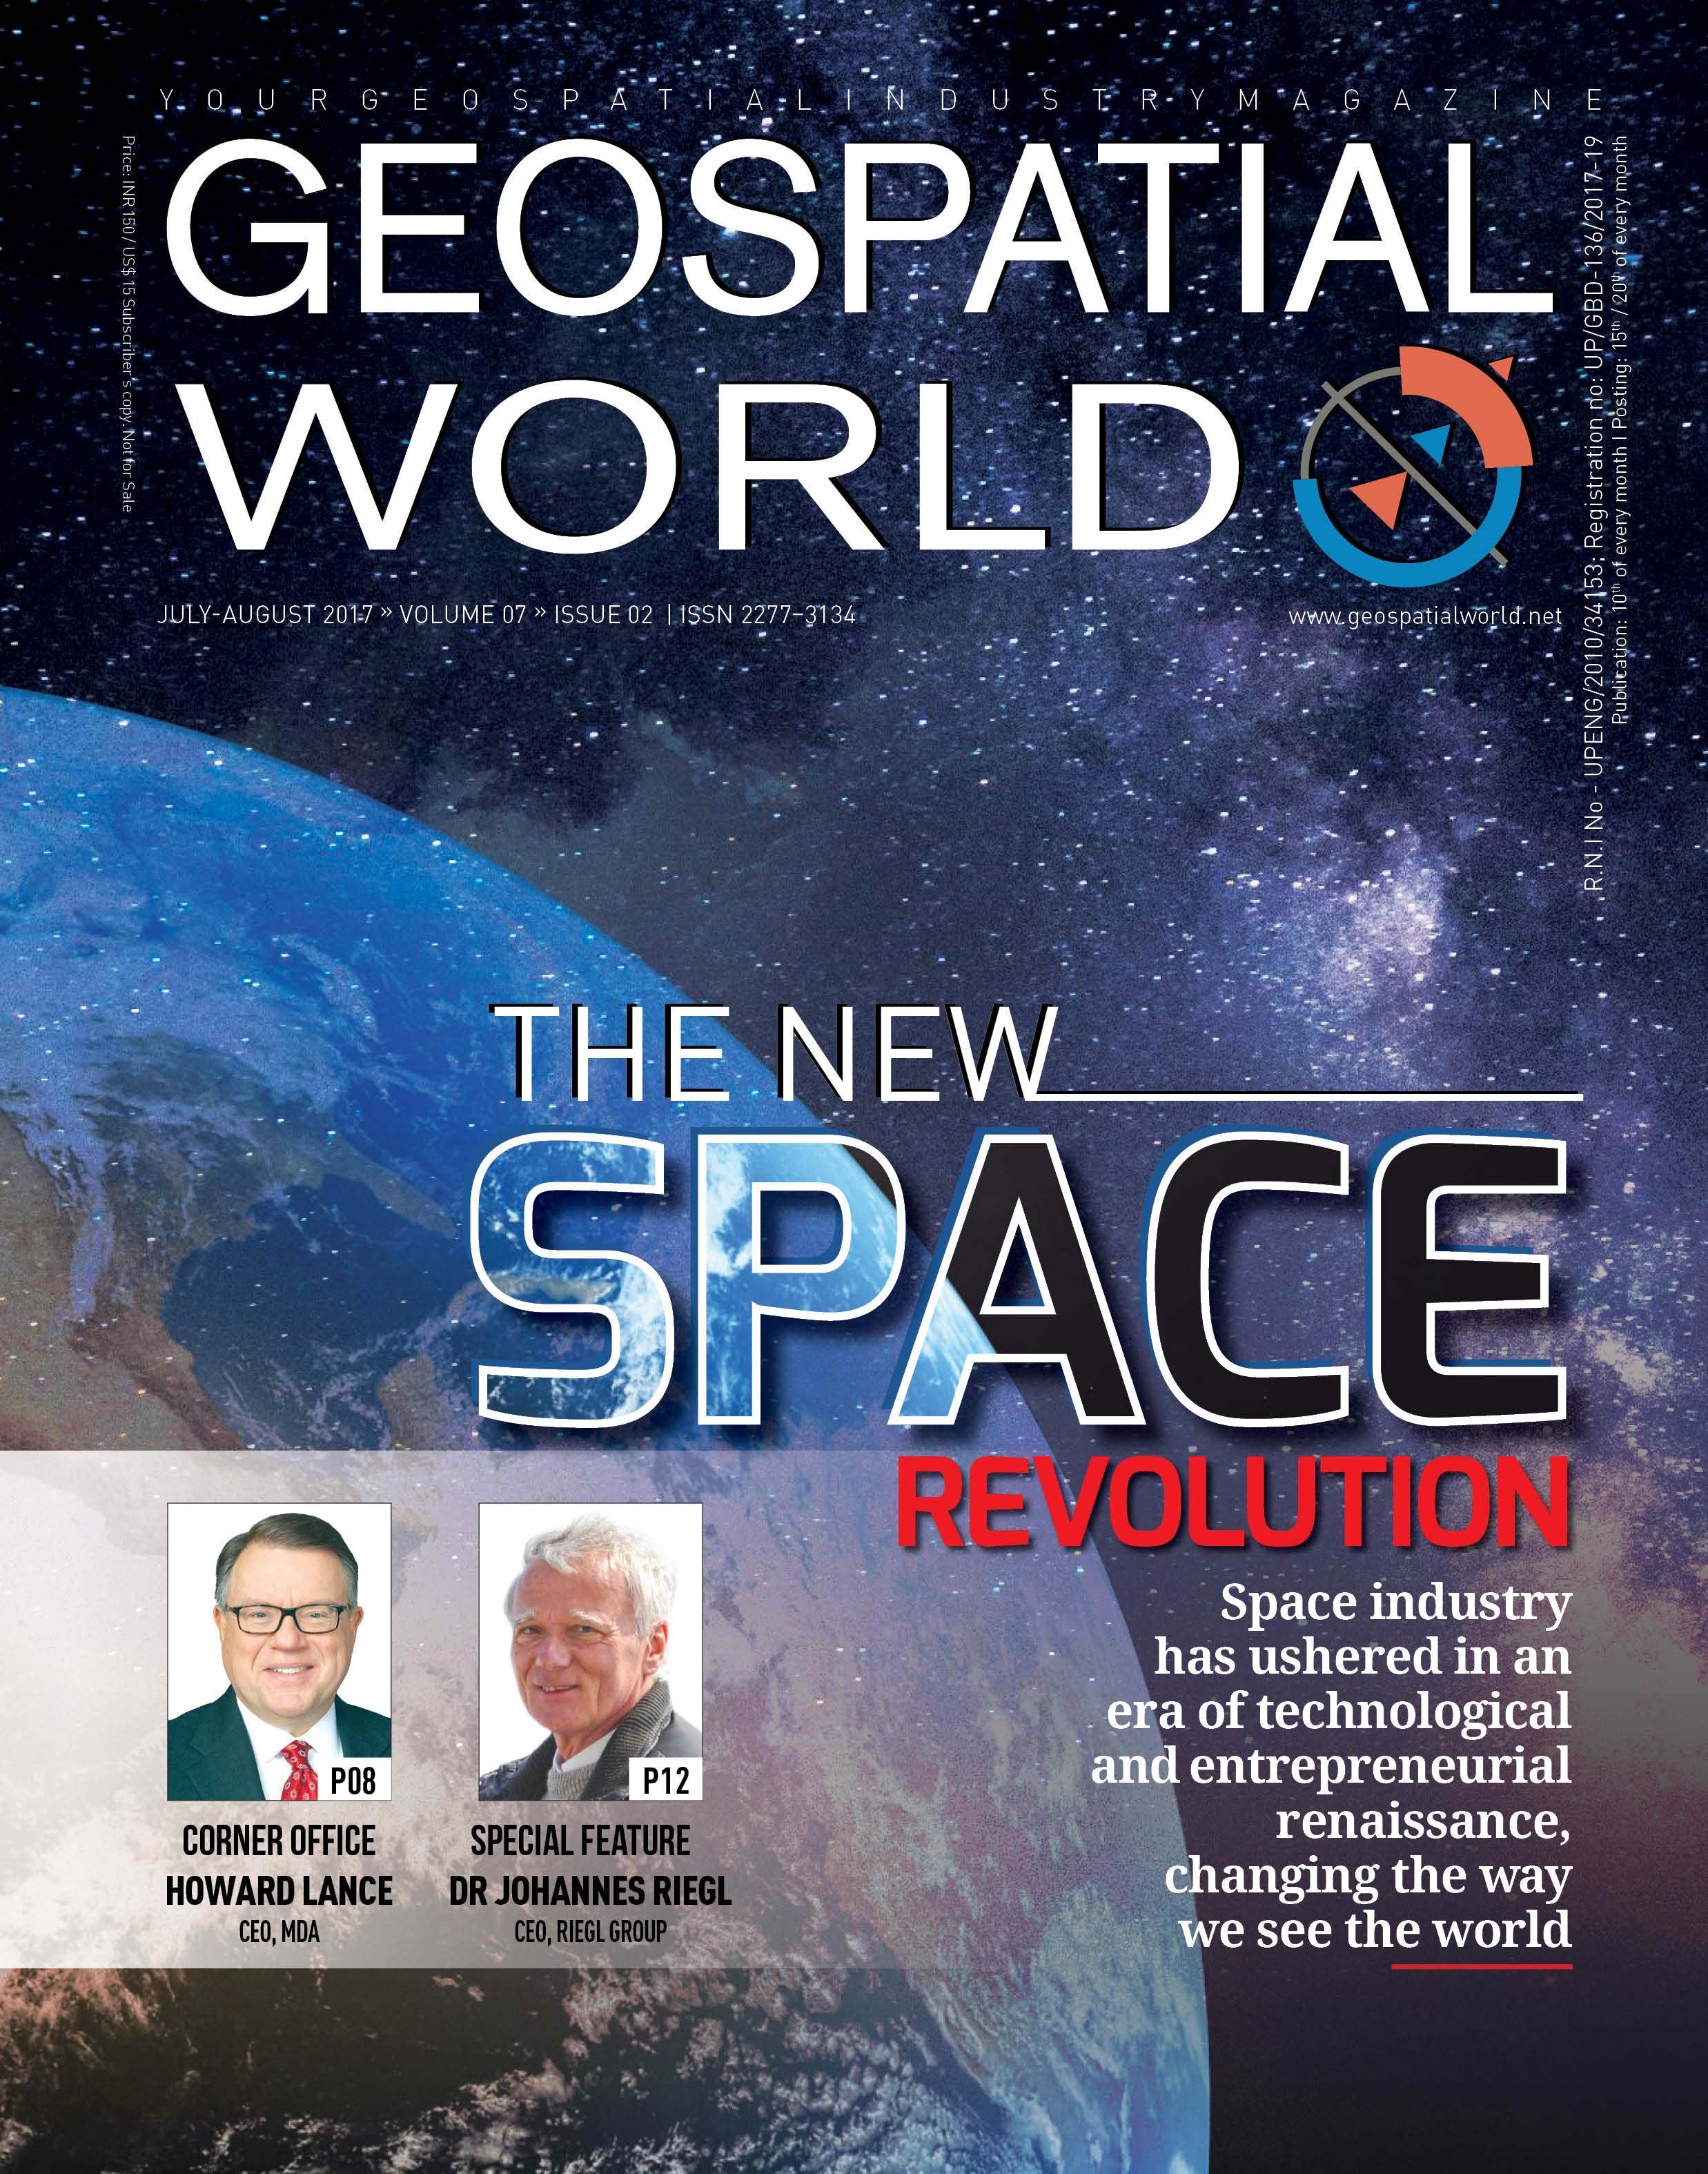 Geospatial World Magazine July 2017: Revolution in Satellite Technology